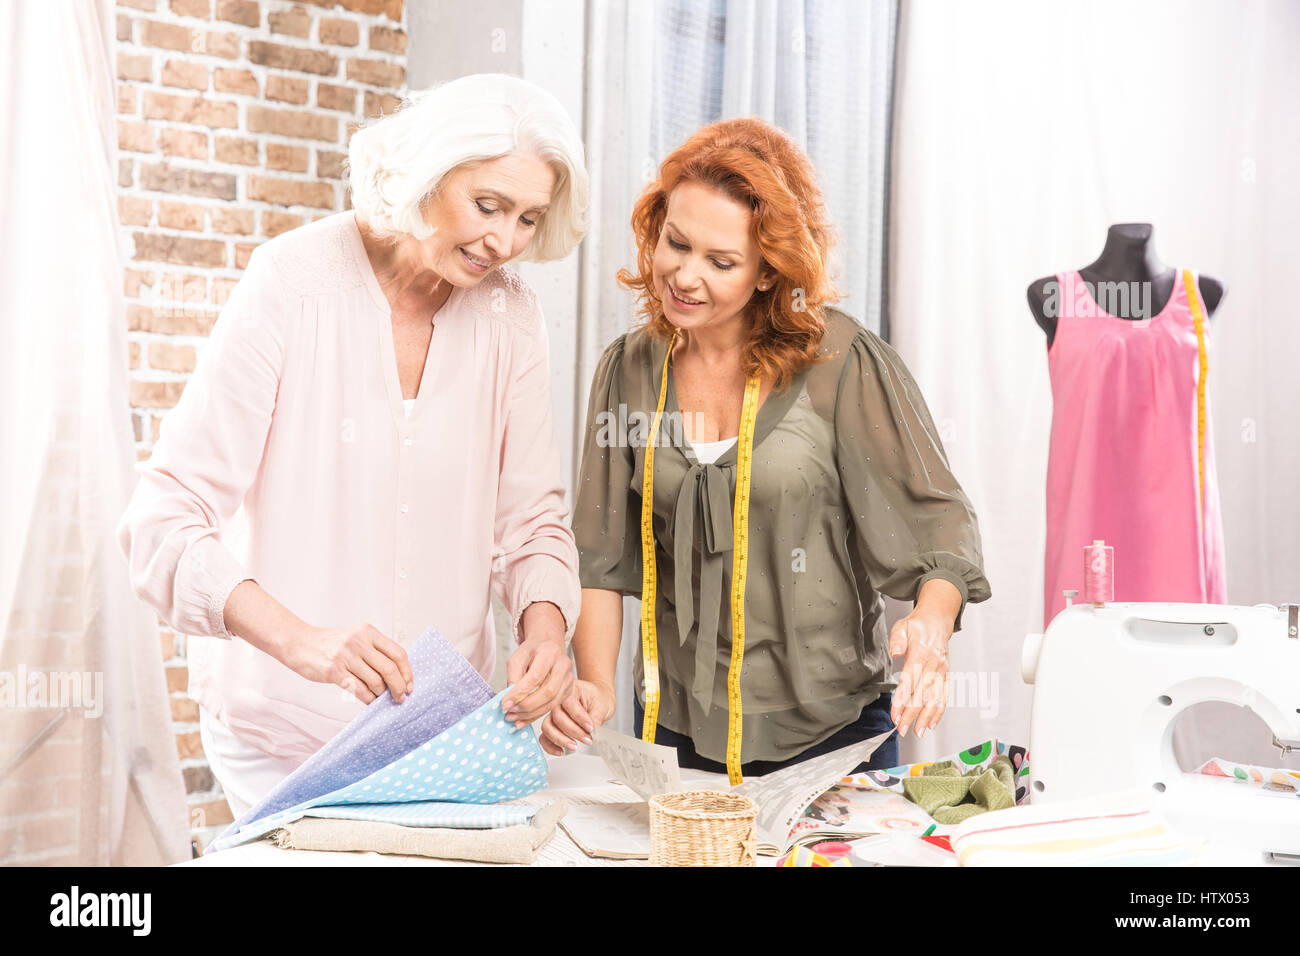 Two smiling seamstresses - Stock Image